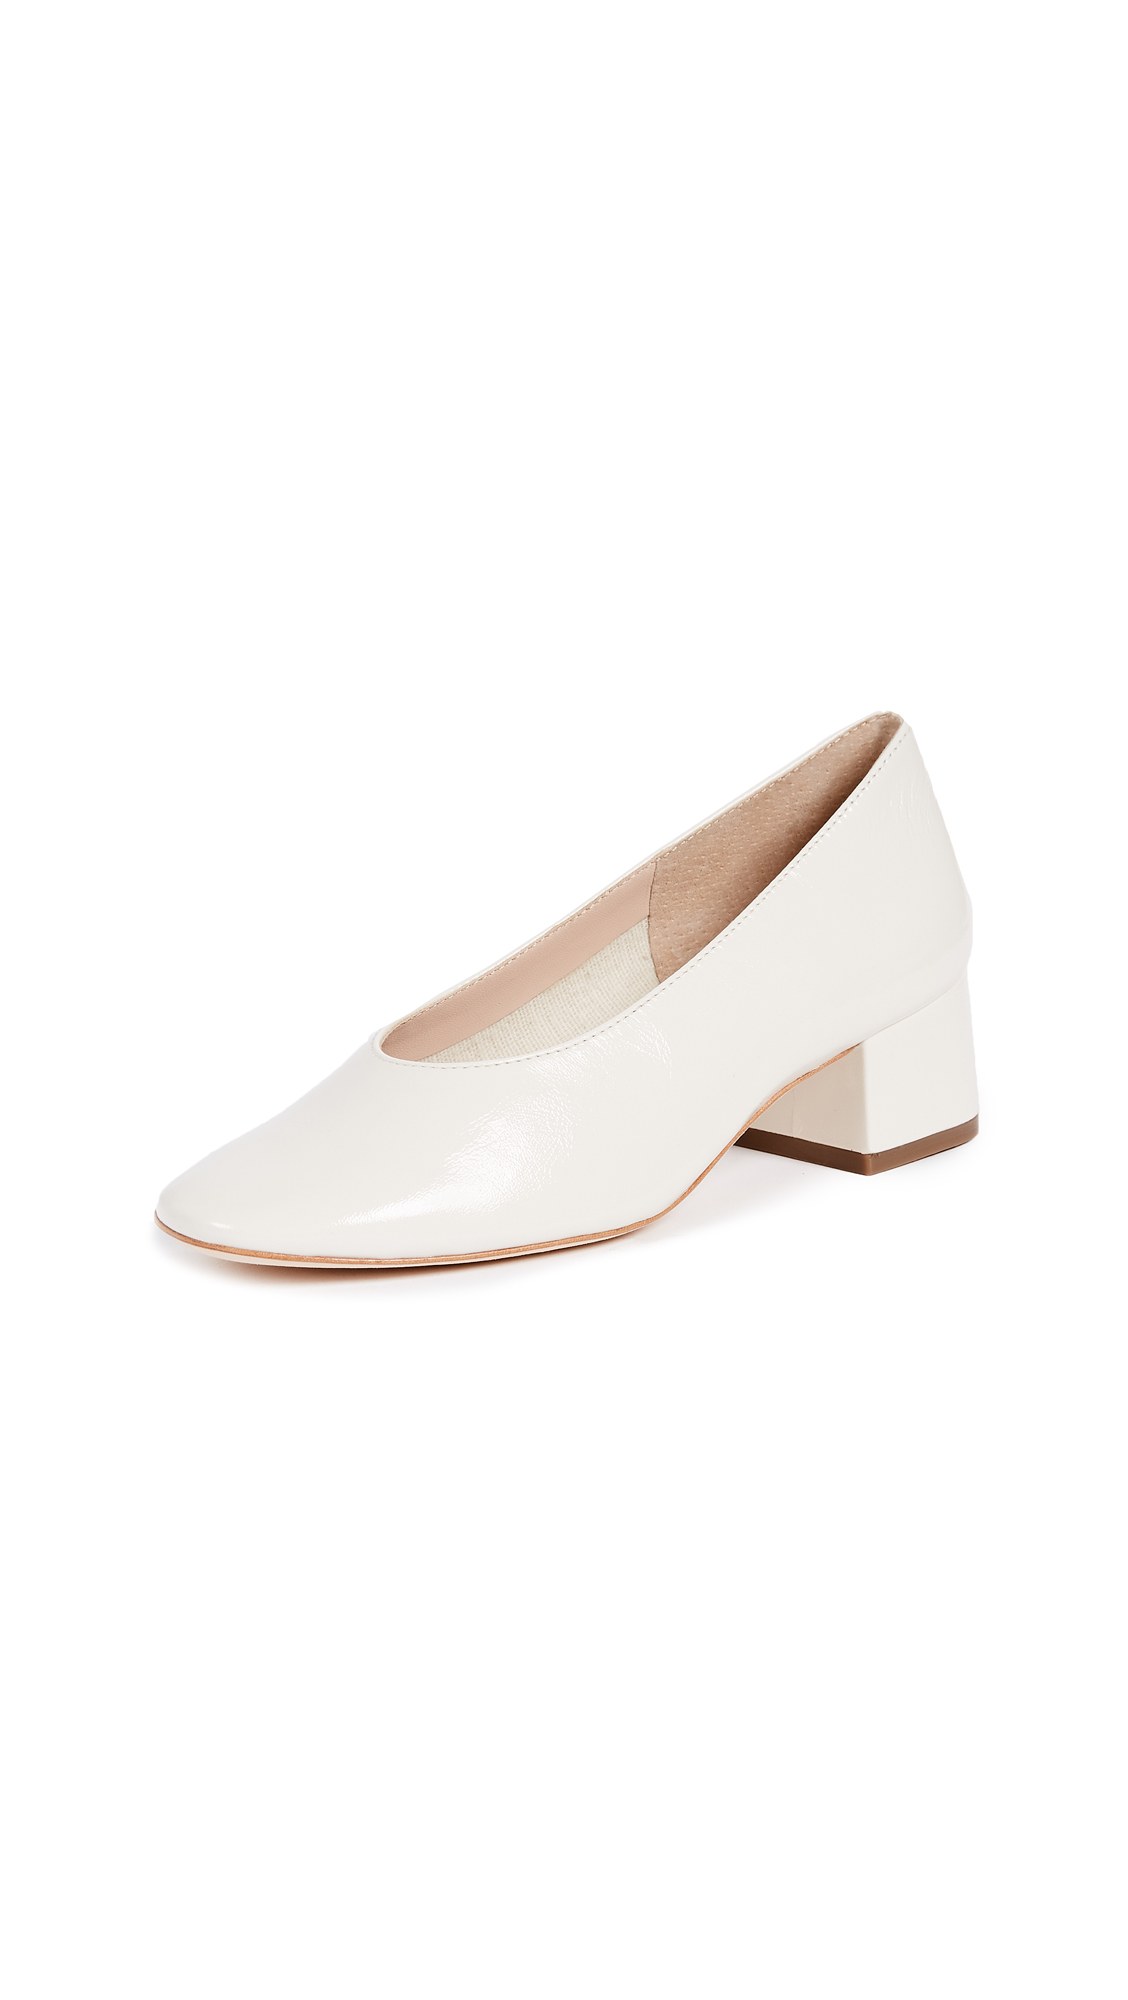 Loeffler Randall Brooks Low Heel Pumps - Stone